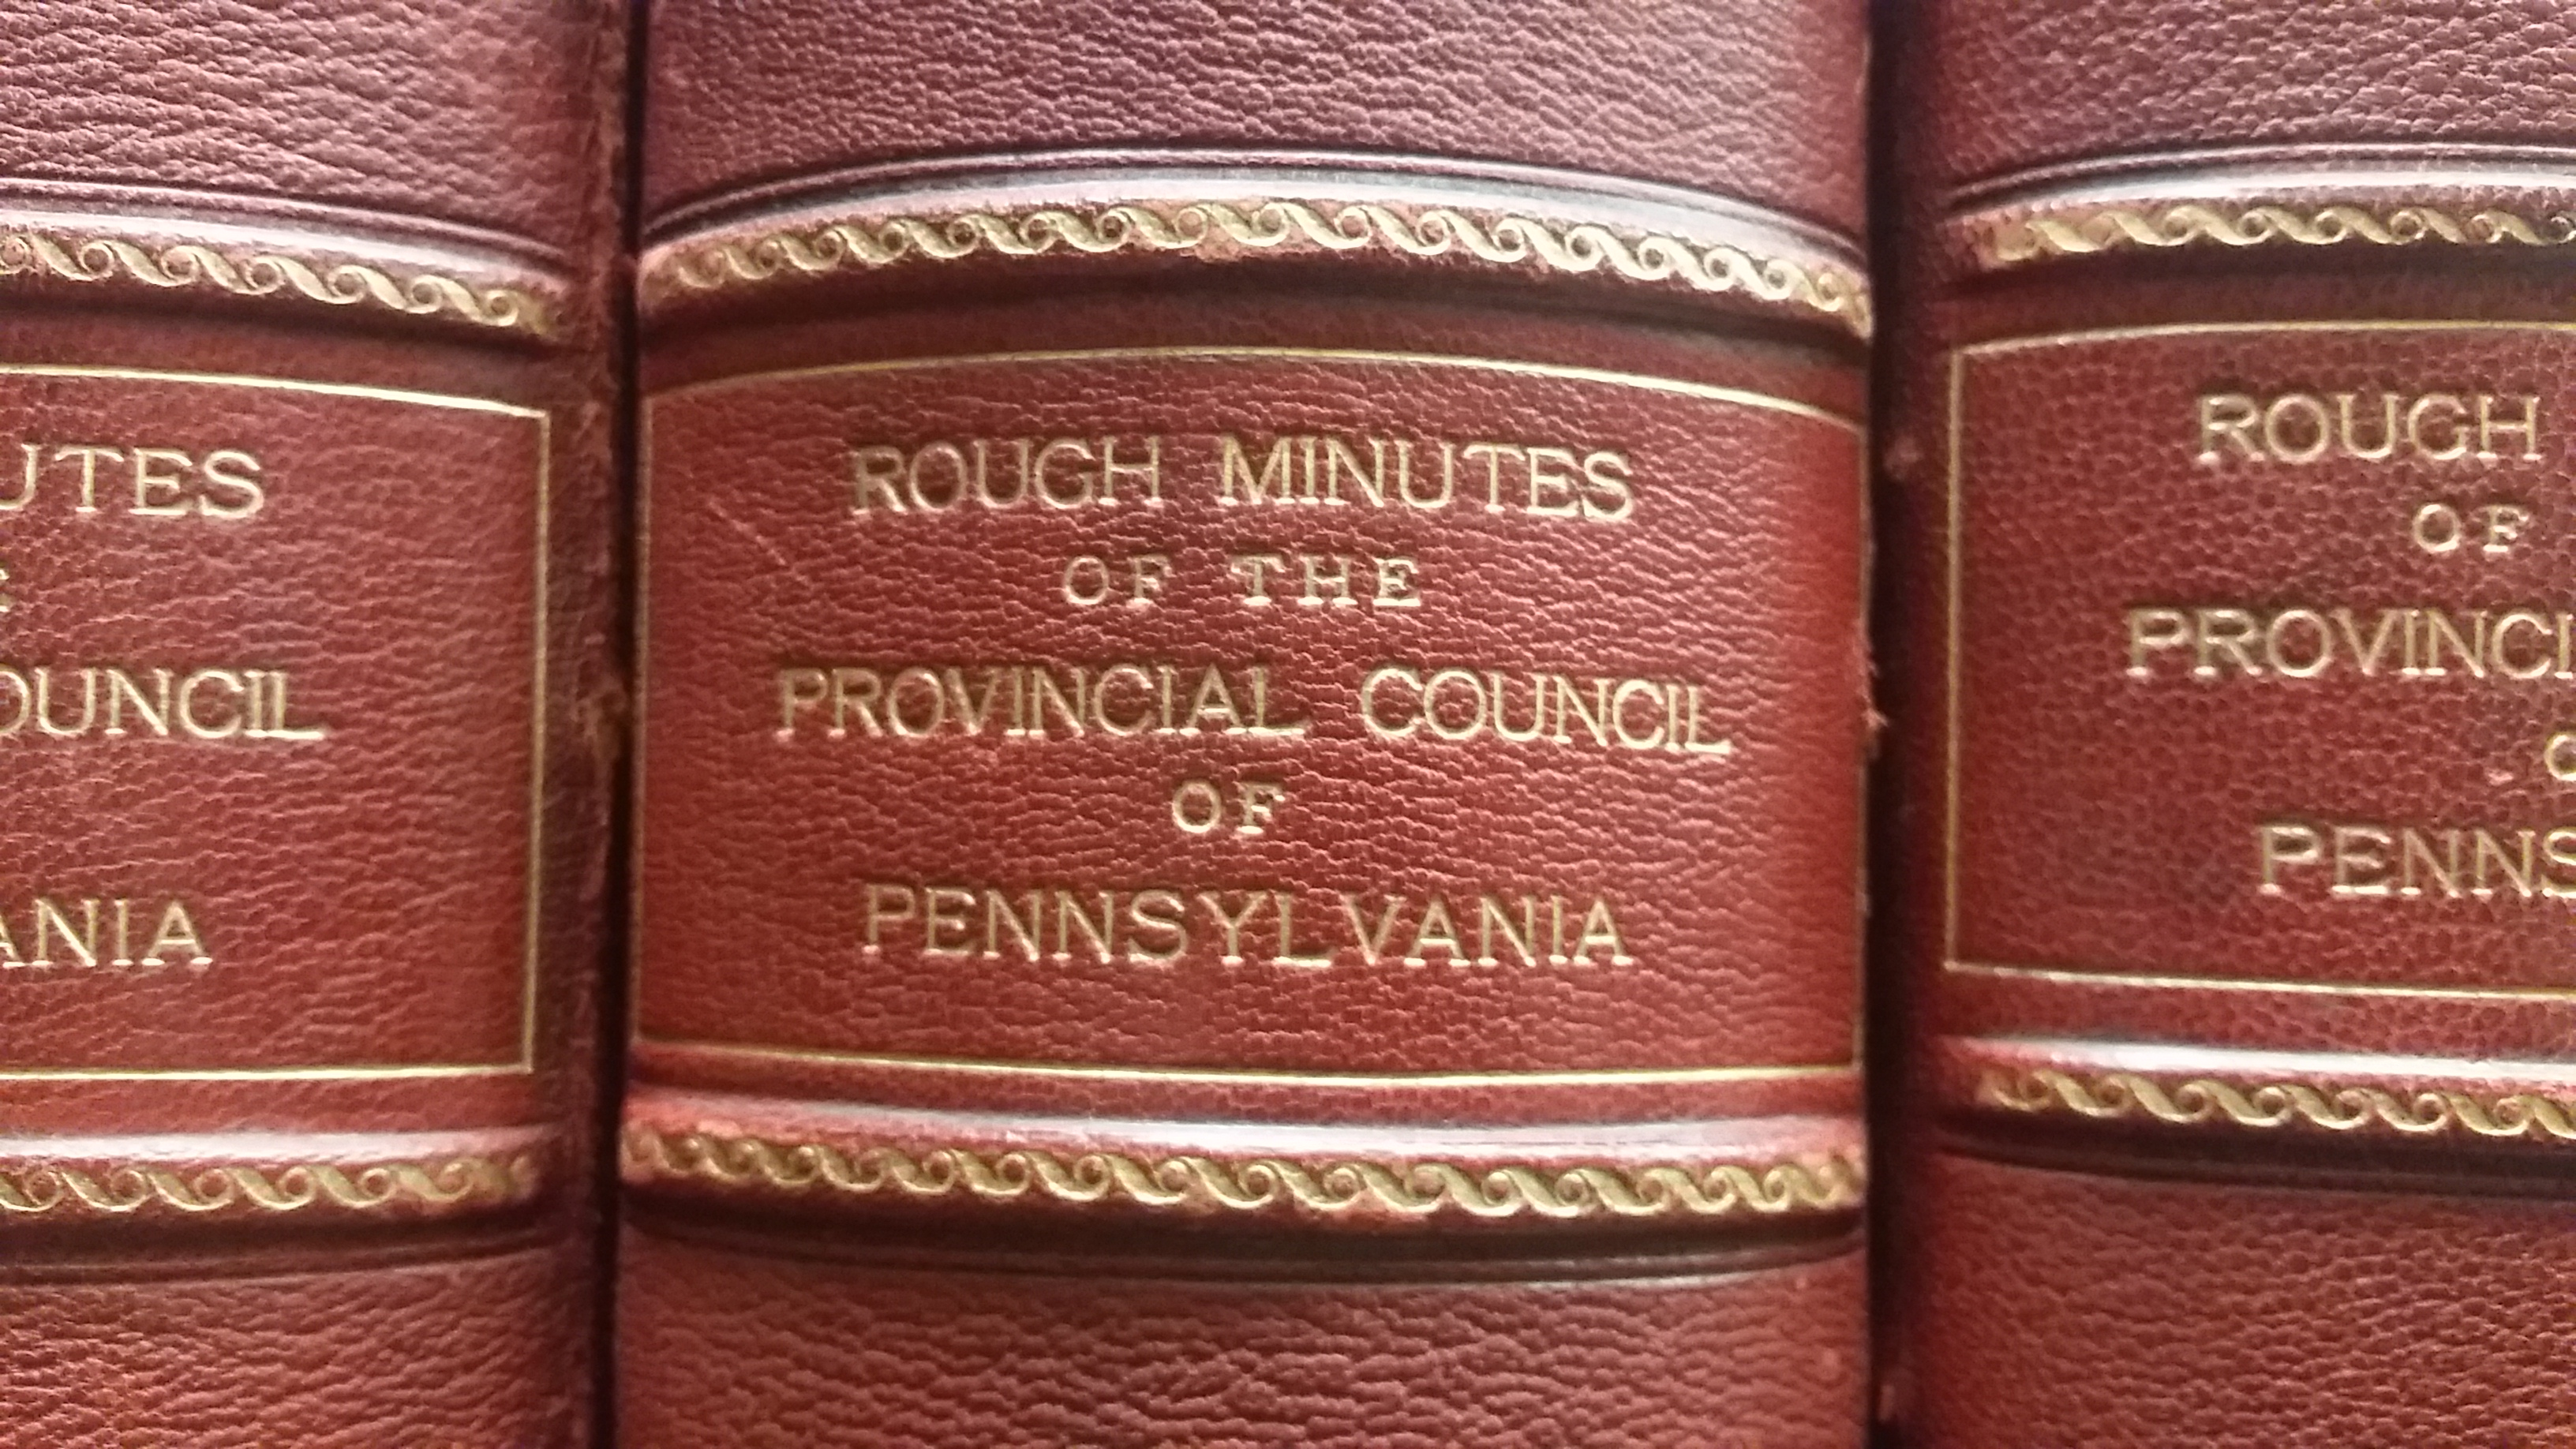 Book spine of council minutes volume